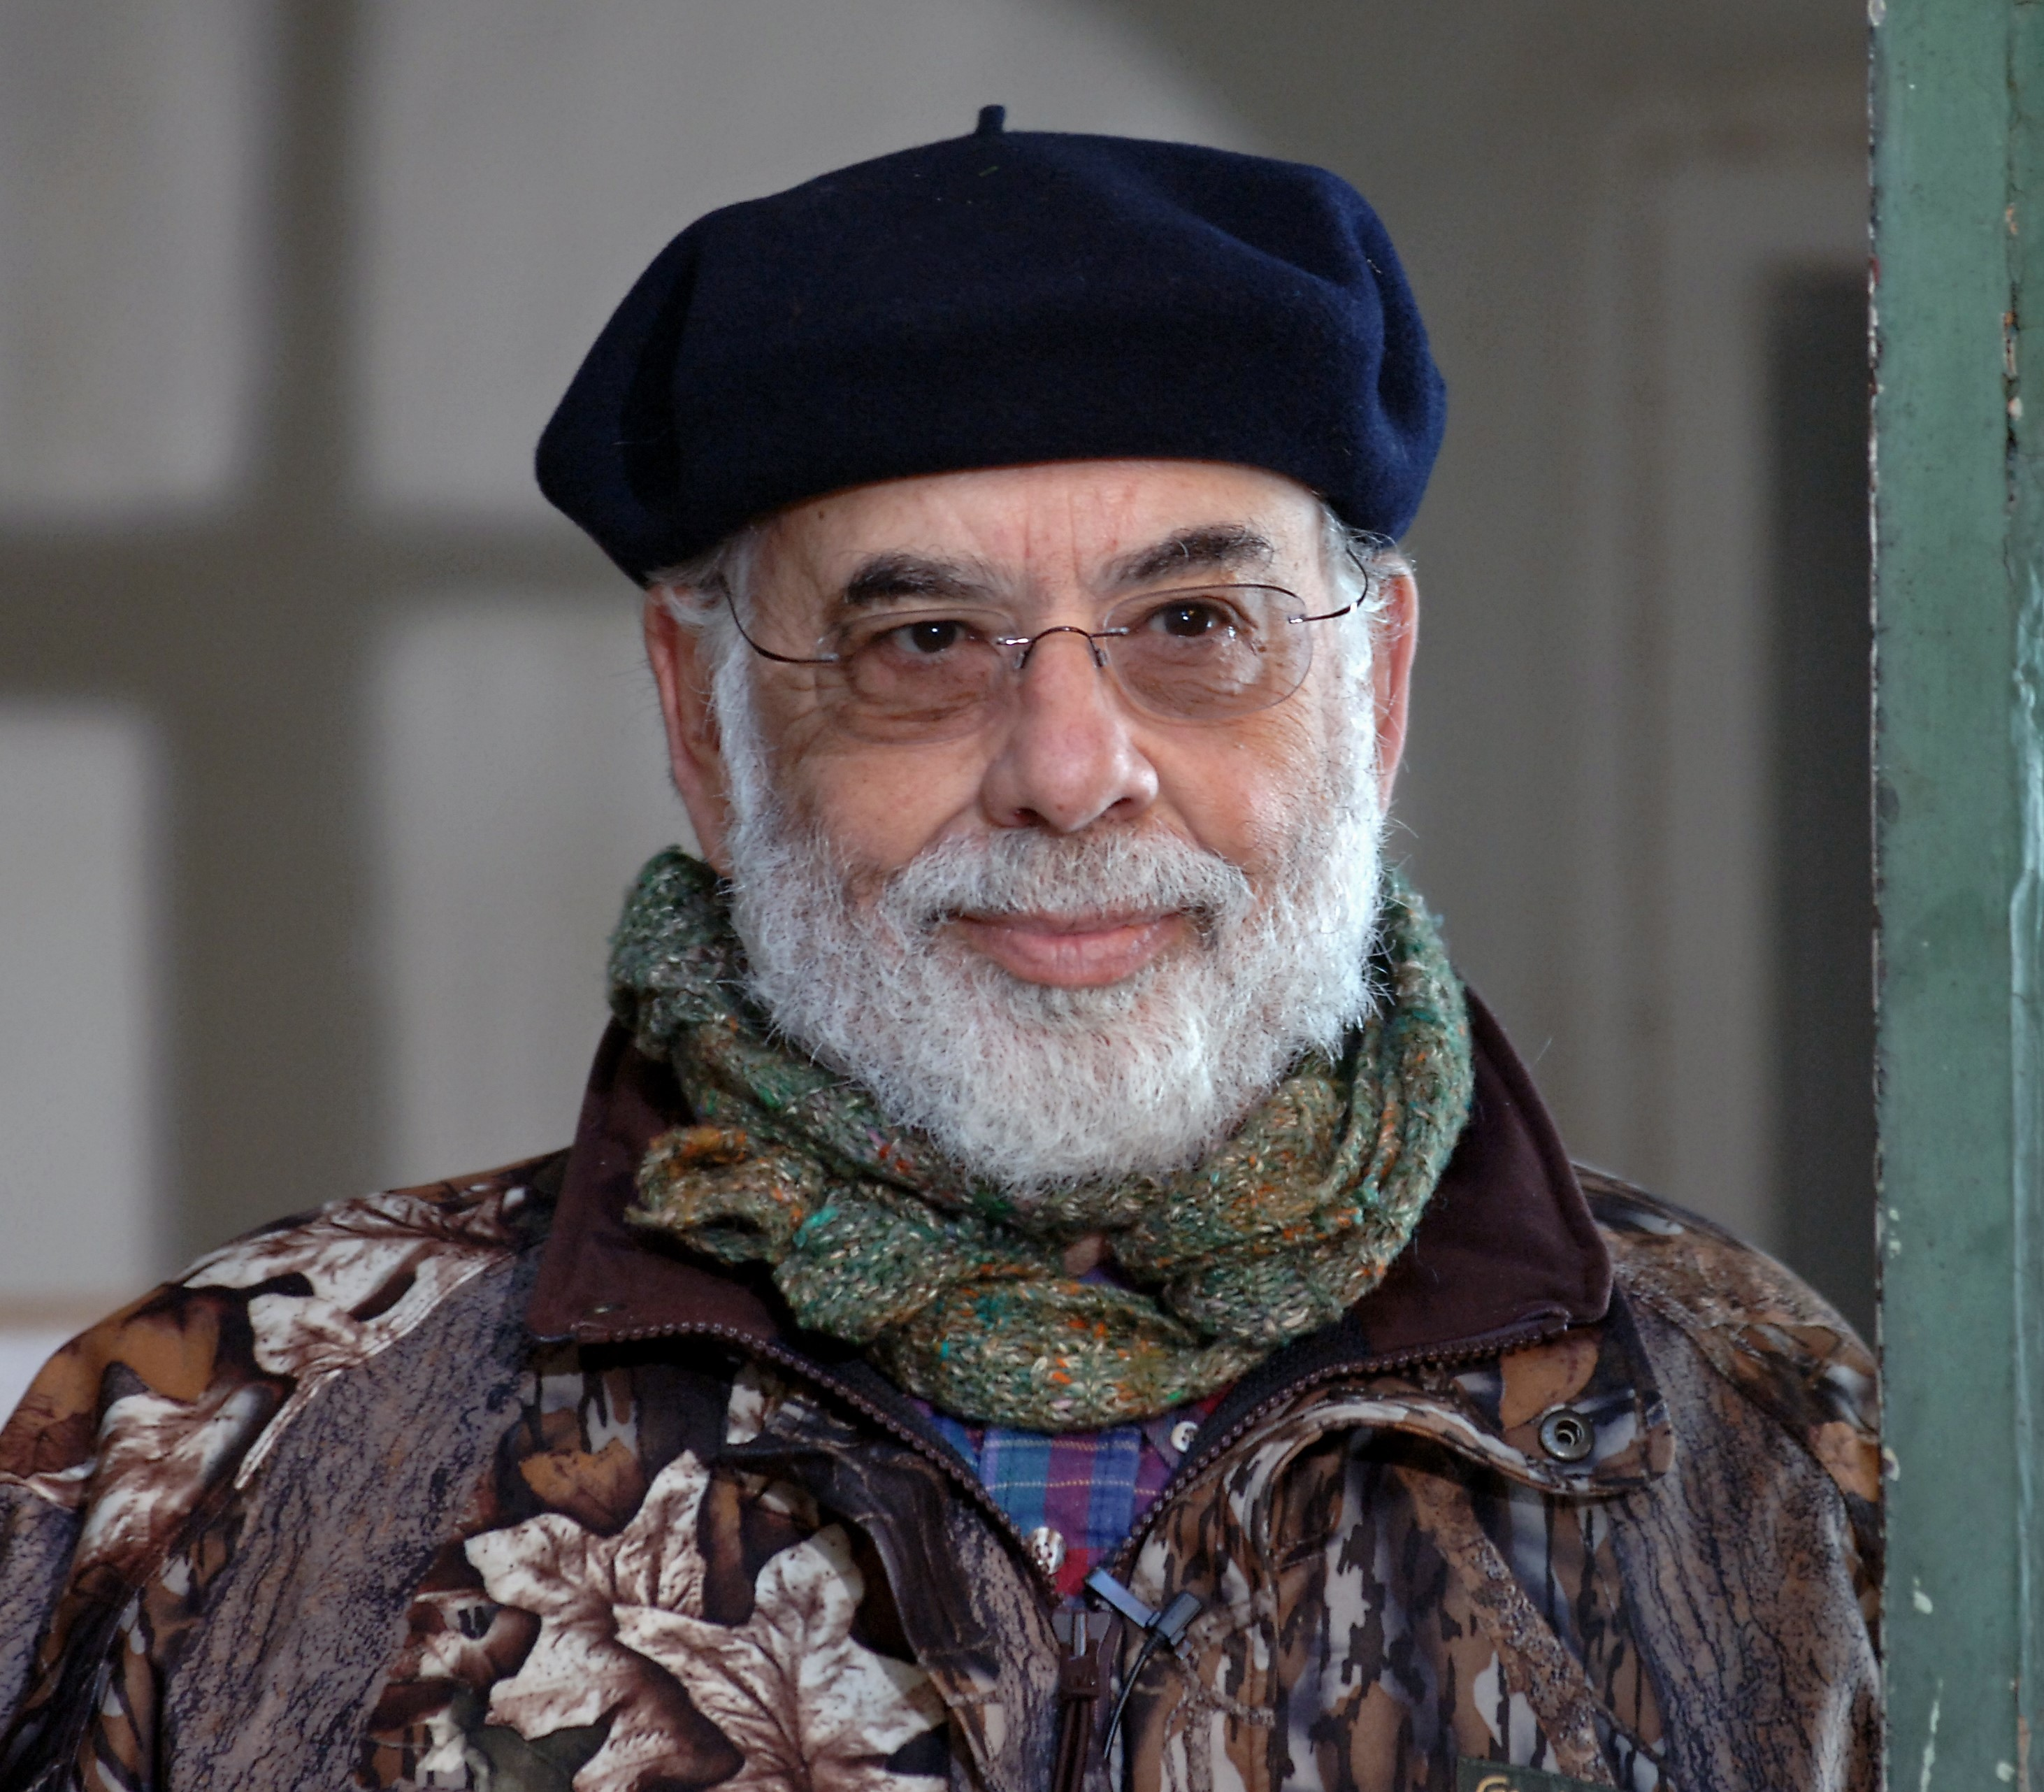 Francis Ford Coppola, Film Director